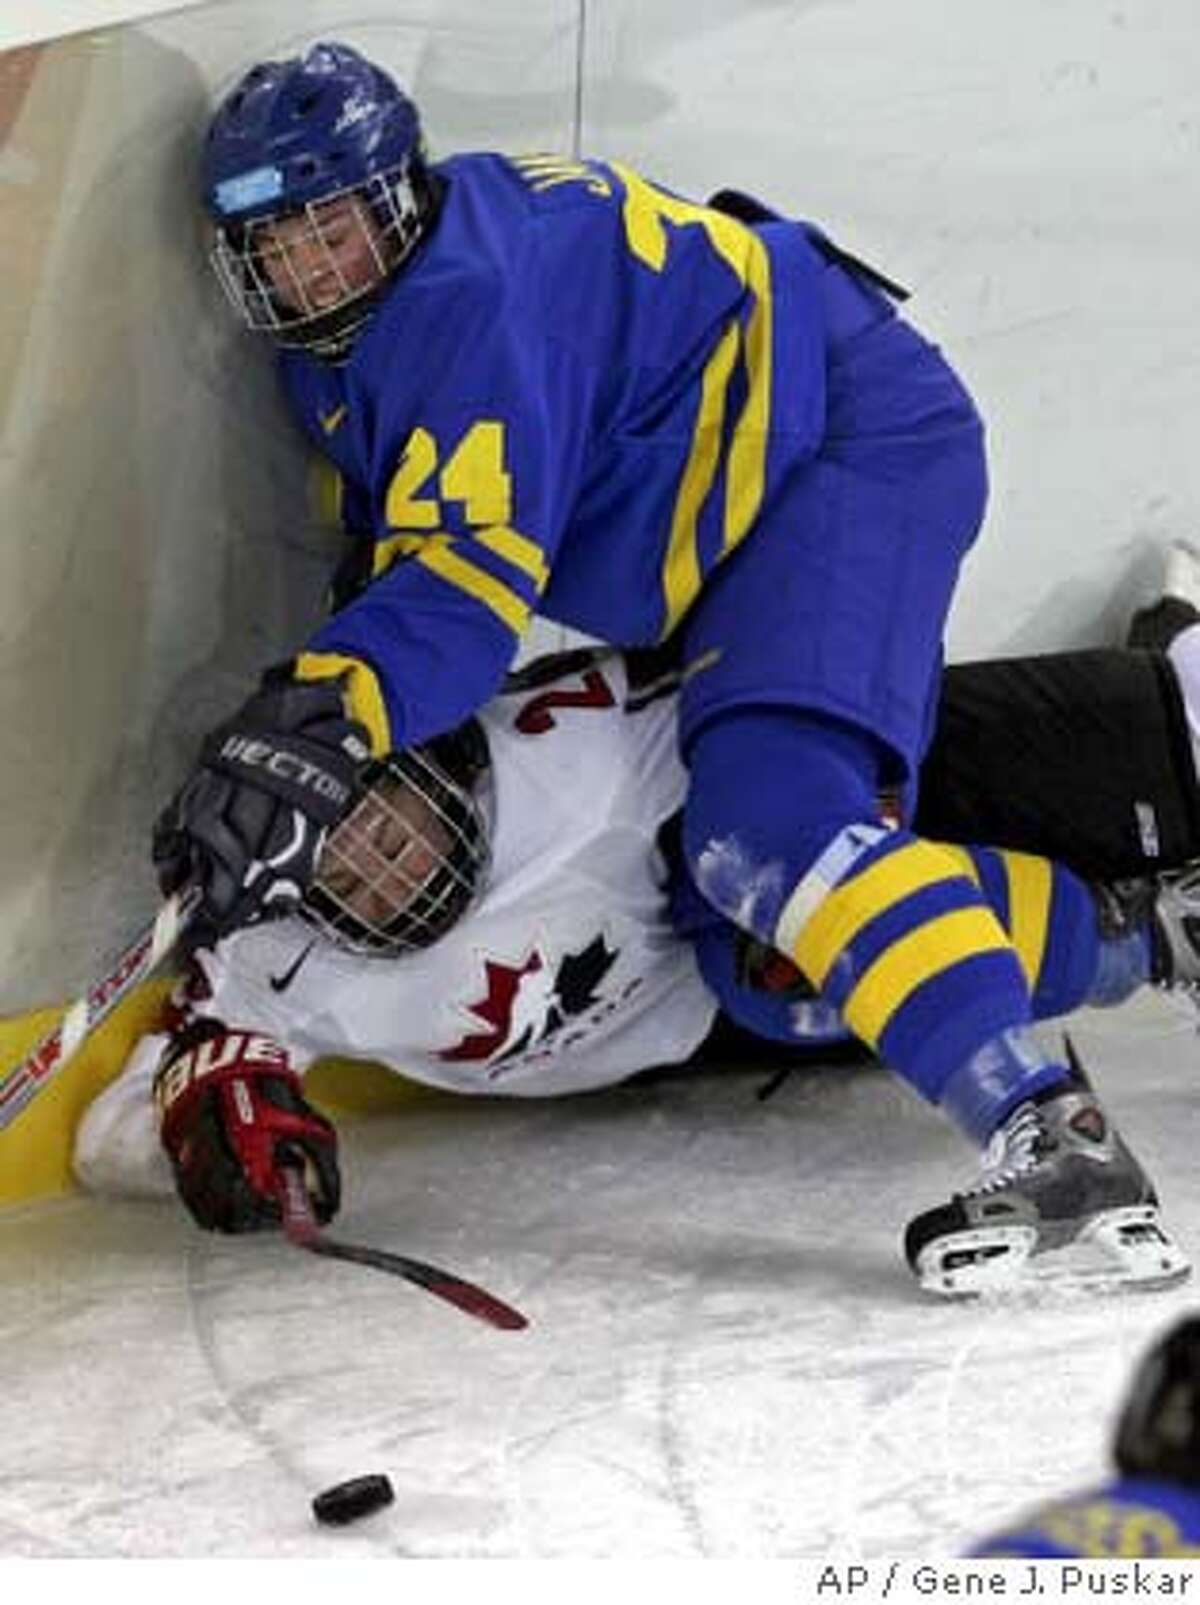 weden's Nanna Jansson (24) collides along the boards with Canada's Sarah Vaillancourt during a 2006 Winter Olympics women's ice hockey match Tuesday, Feb. 14, 2006, in Turin, Italy. (AP Photo/Gene J. Puskar)